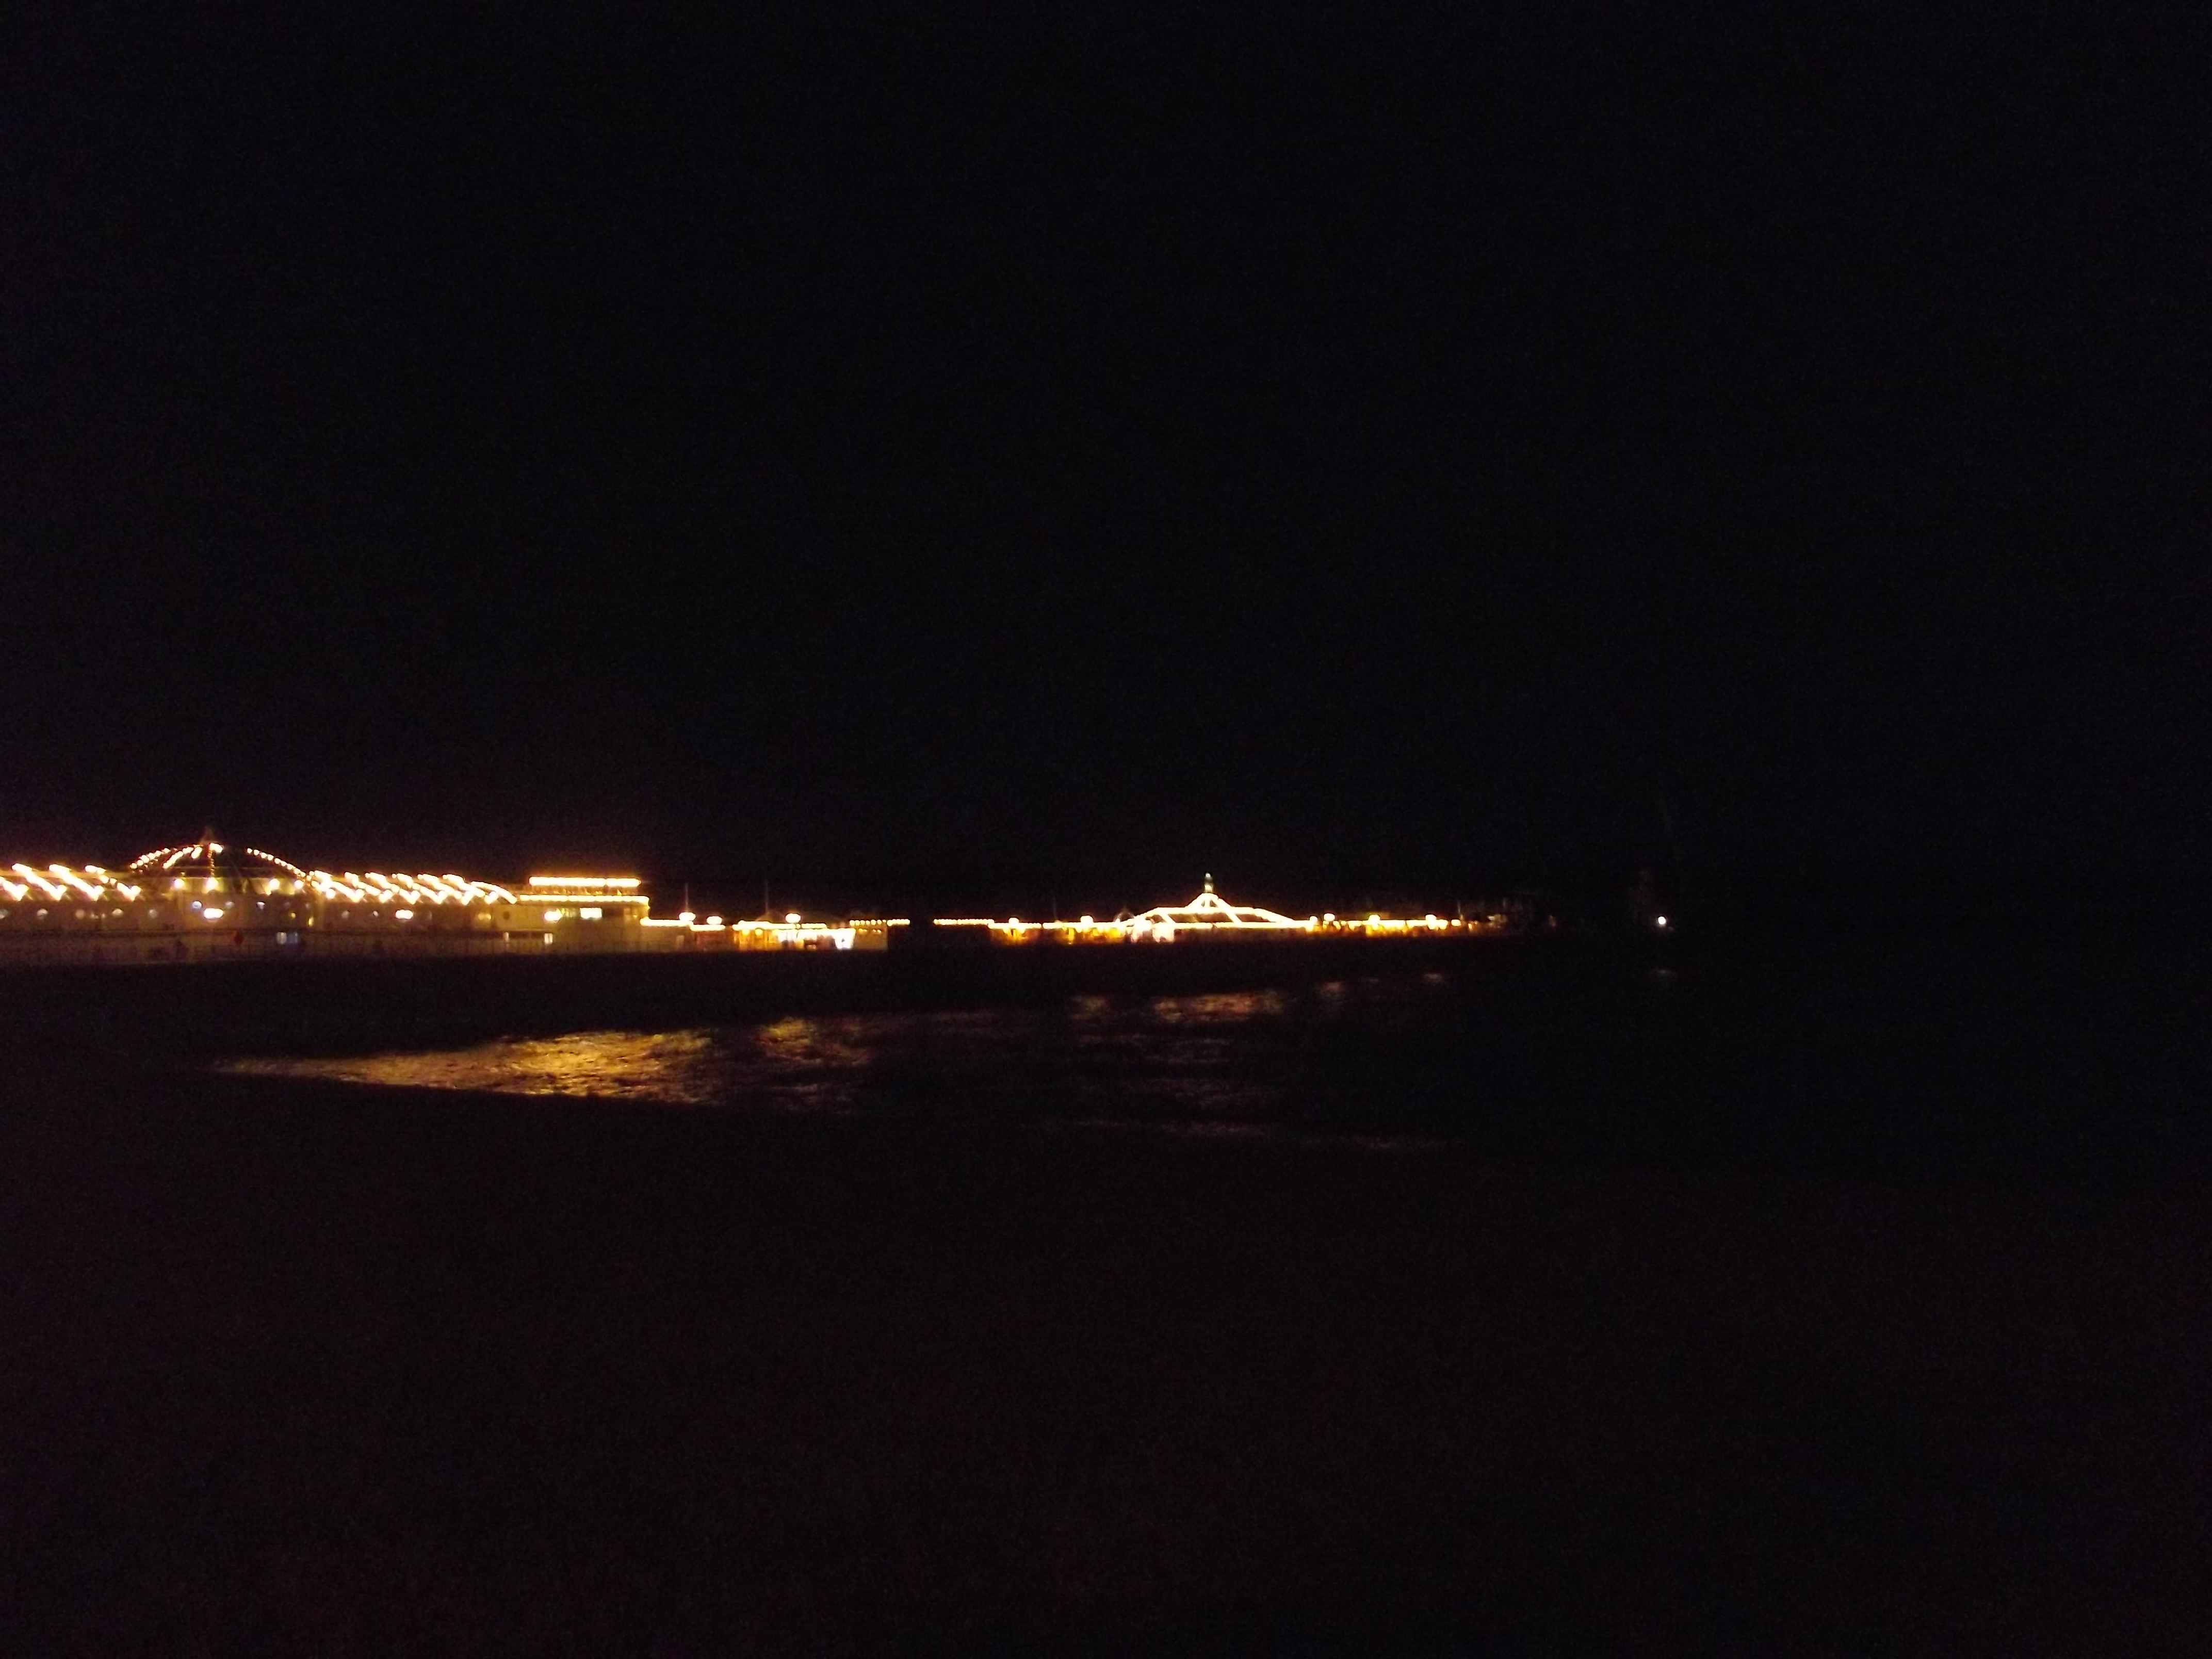 brighton peer at night